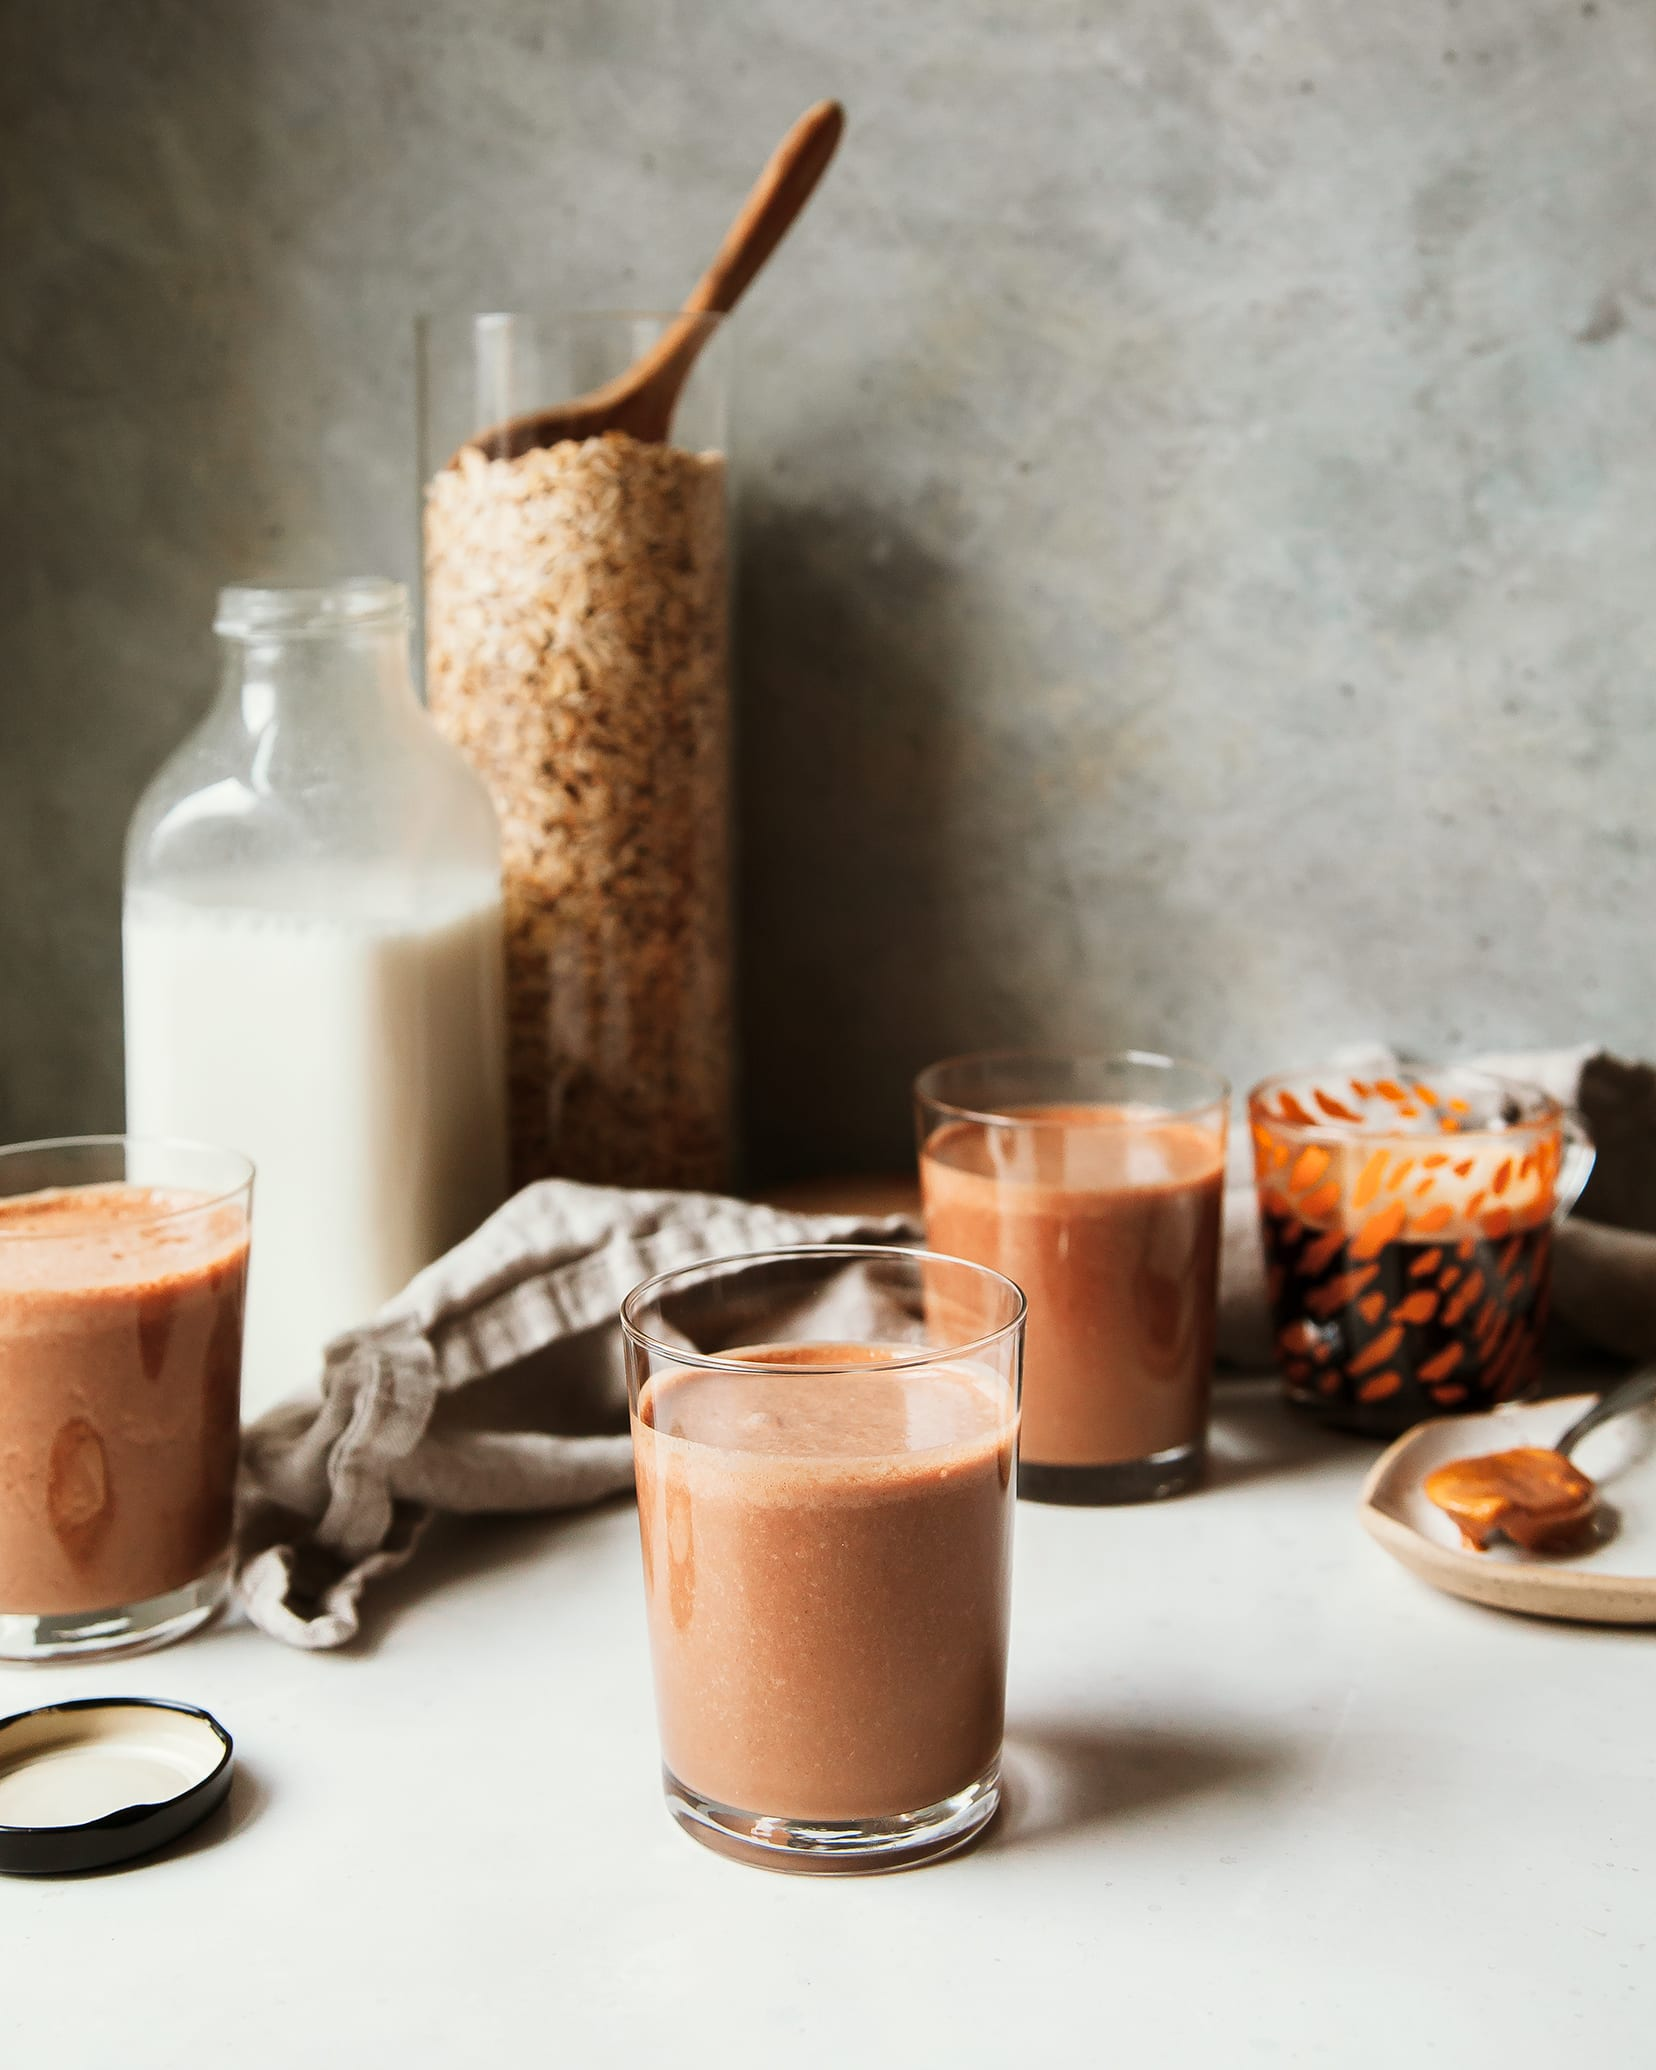 A head on shot of a thick peanut butter mocha smoothie that is rich, chocolate brown in colour. In the background, there is a clear bottle of homemade non-dairy milk and a big clear jar of oats.